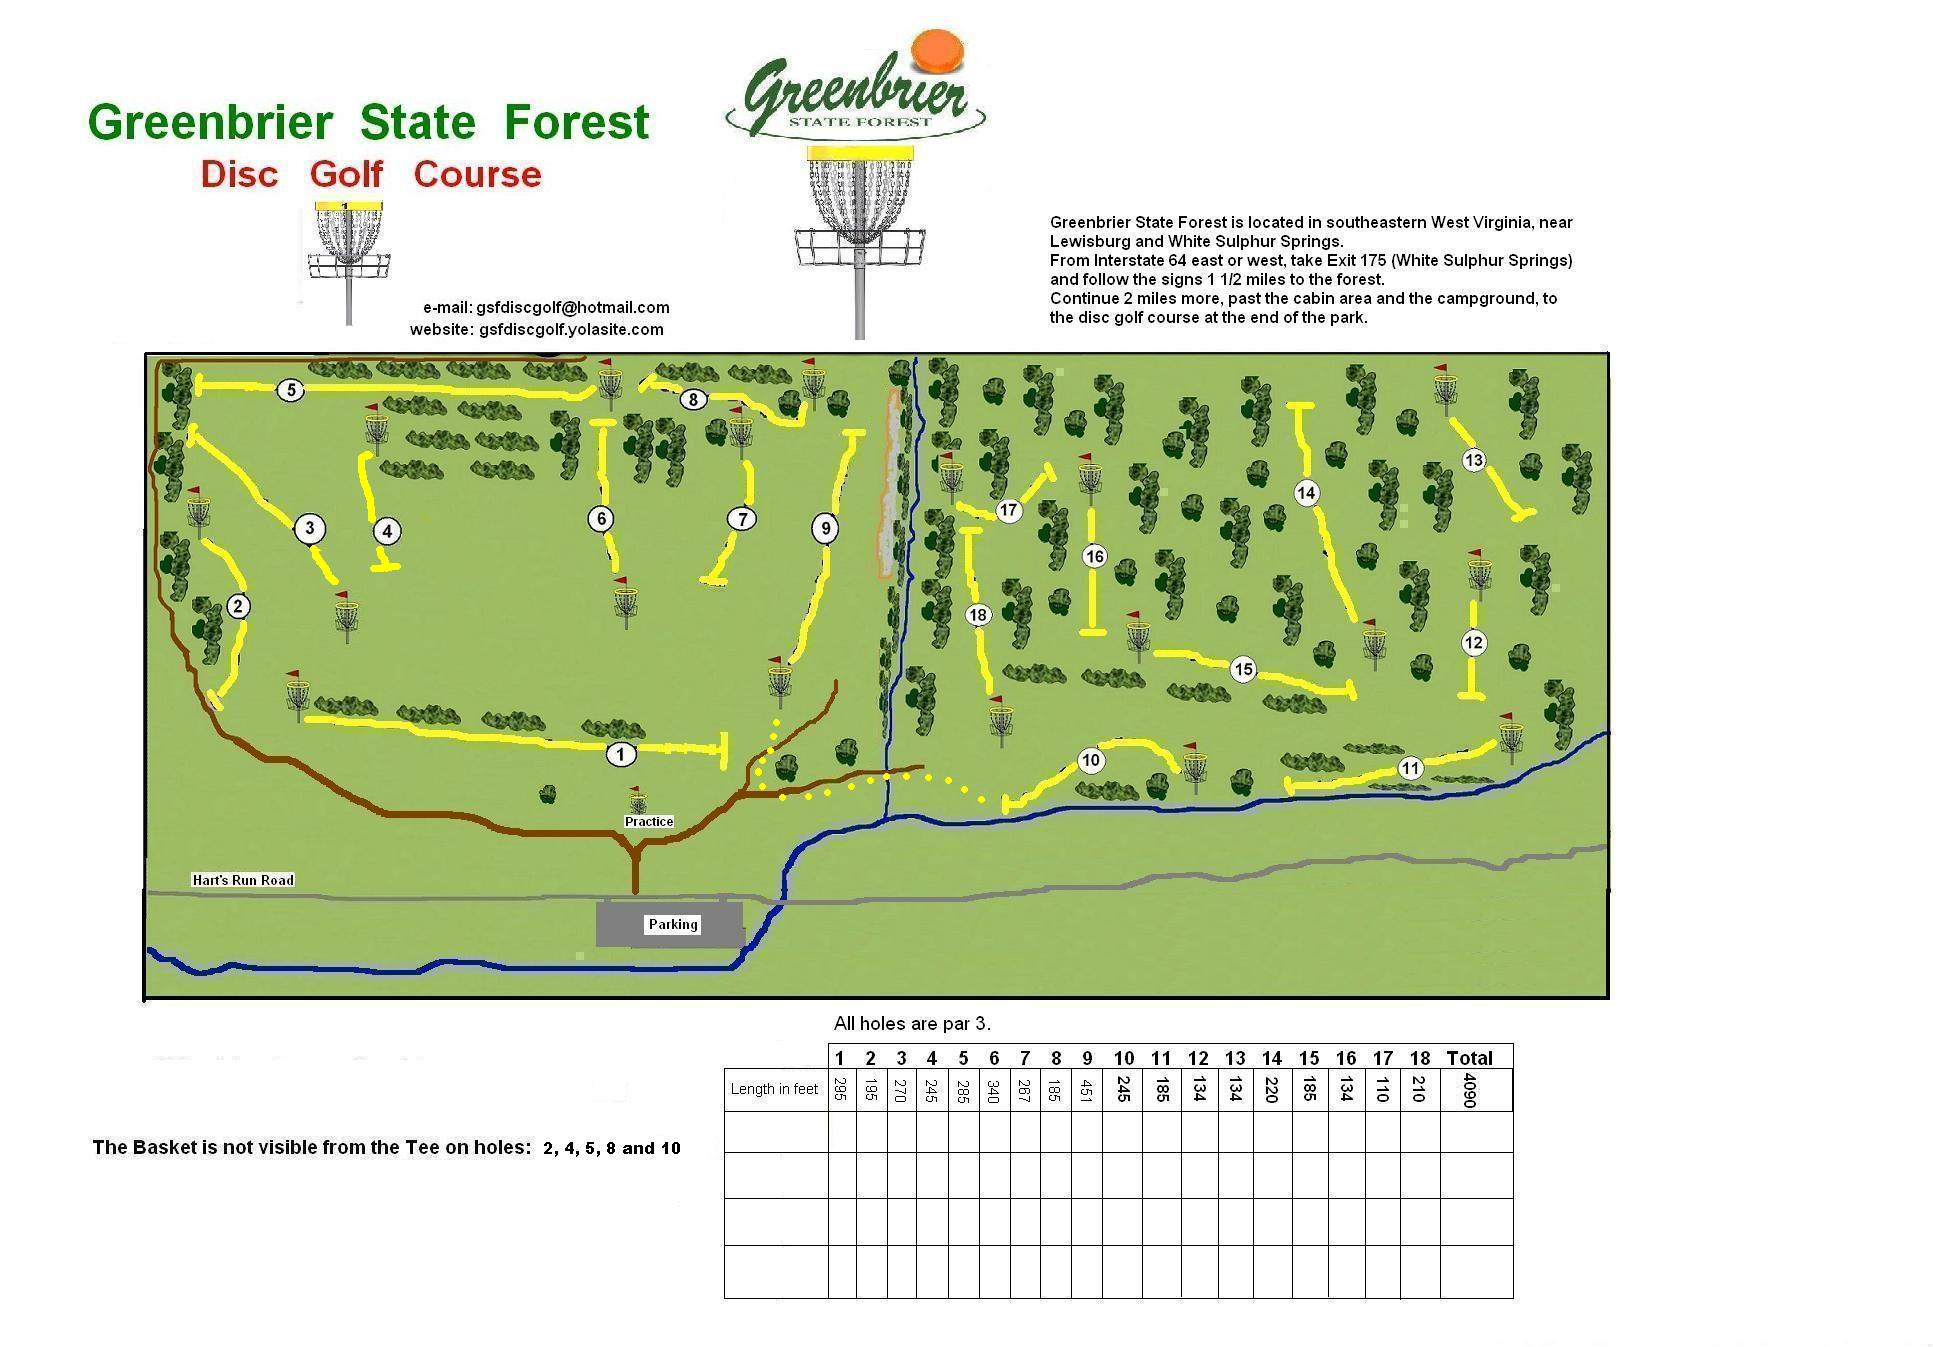 Greenbrier State Forest Disc Golf Course Hole Diagram Some Rules For Recreational Play Those Who Have Not Played Before